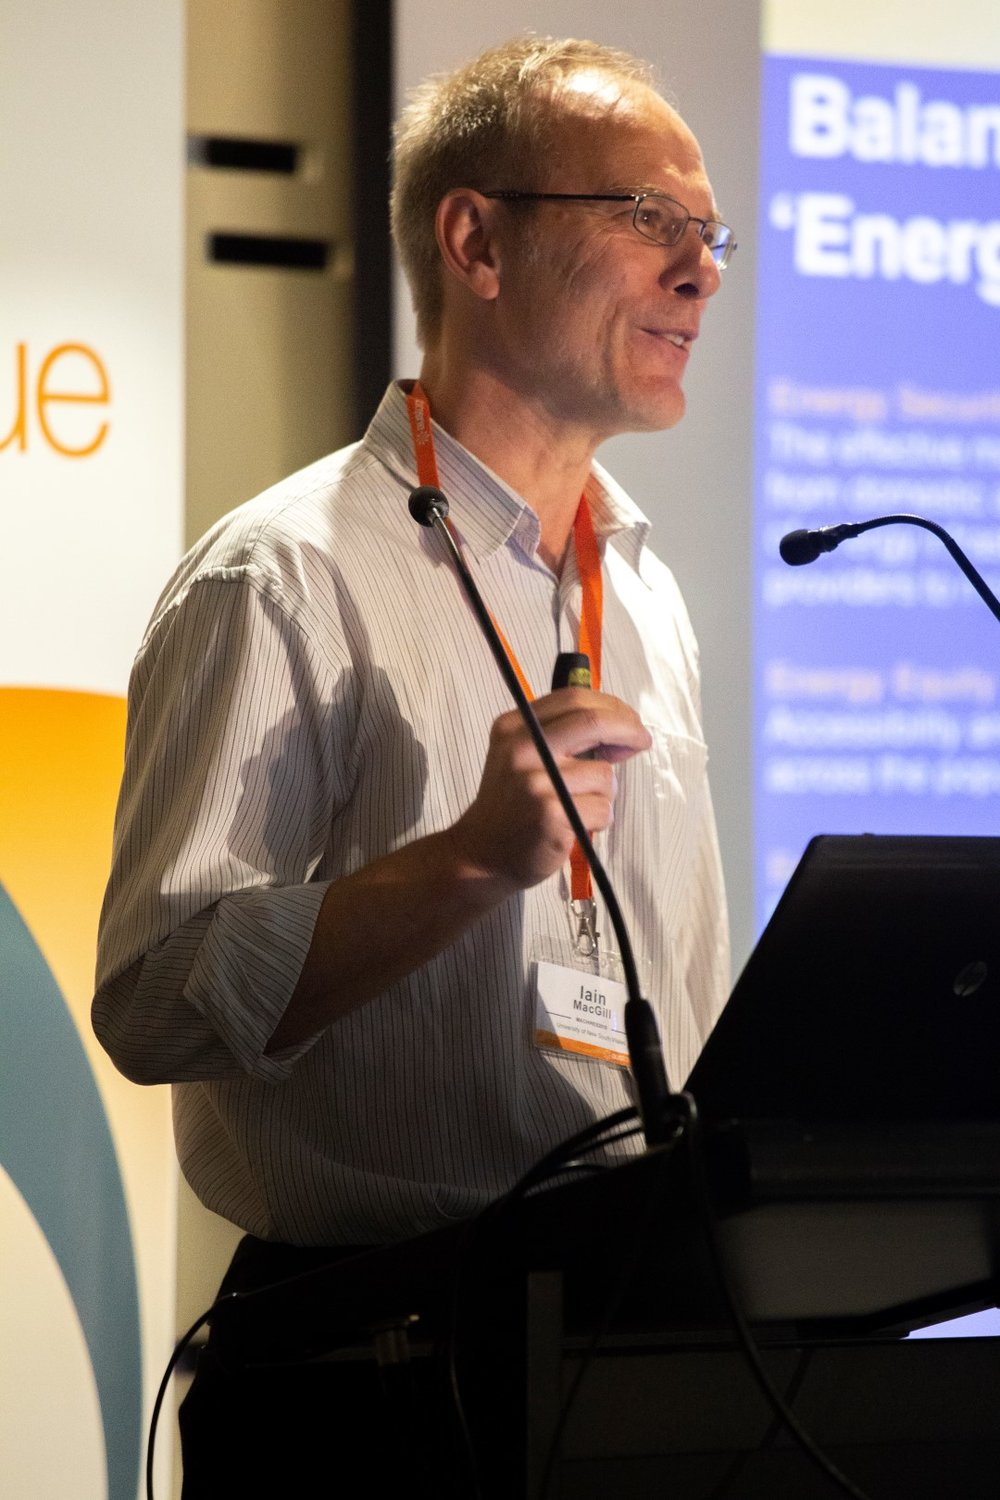 Monday 29th October - Comparison of Low-Frequency and High-Frequency Partial Discharge MeasurementConnor Chan, IRIS Power LPThe future Australian National Electricity Market – how renewable, how distributed, how synchronous, and how much storage?Dr Iain MacGill, UNSW SydneyGenerator De-Gassing & Purging: Best Practices for Safe Plant OperationGus Graham, Environment One CorporationOn-Site Condition Assessment of High-Voltage Insulation Systems in Rotating MachinesFabian Oettl, OMICRON electronicsHow To Achieve 40+ Years Operational Life From Your Next RewindRussel Chetwynd, National Electric CoilInnovations in Condition Monitoring – Broken Rotor Bar Detection using Numerical RelayMalcolm Ballinger & Peter Burnell, AGLPlugging Of Stator Cooling Water System: Root-Cause Analysis And Chemical CleaningDr Thomas Bauer, SvoBa Tech, IncInstallation and Commissioning of Electric Motors – Best PracticeMike Davis, machinemonitor®